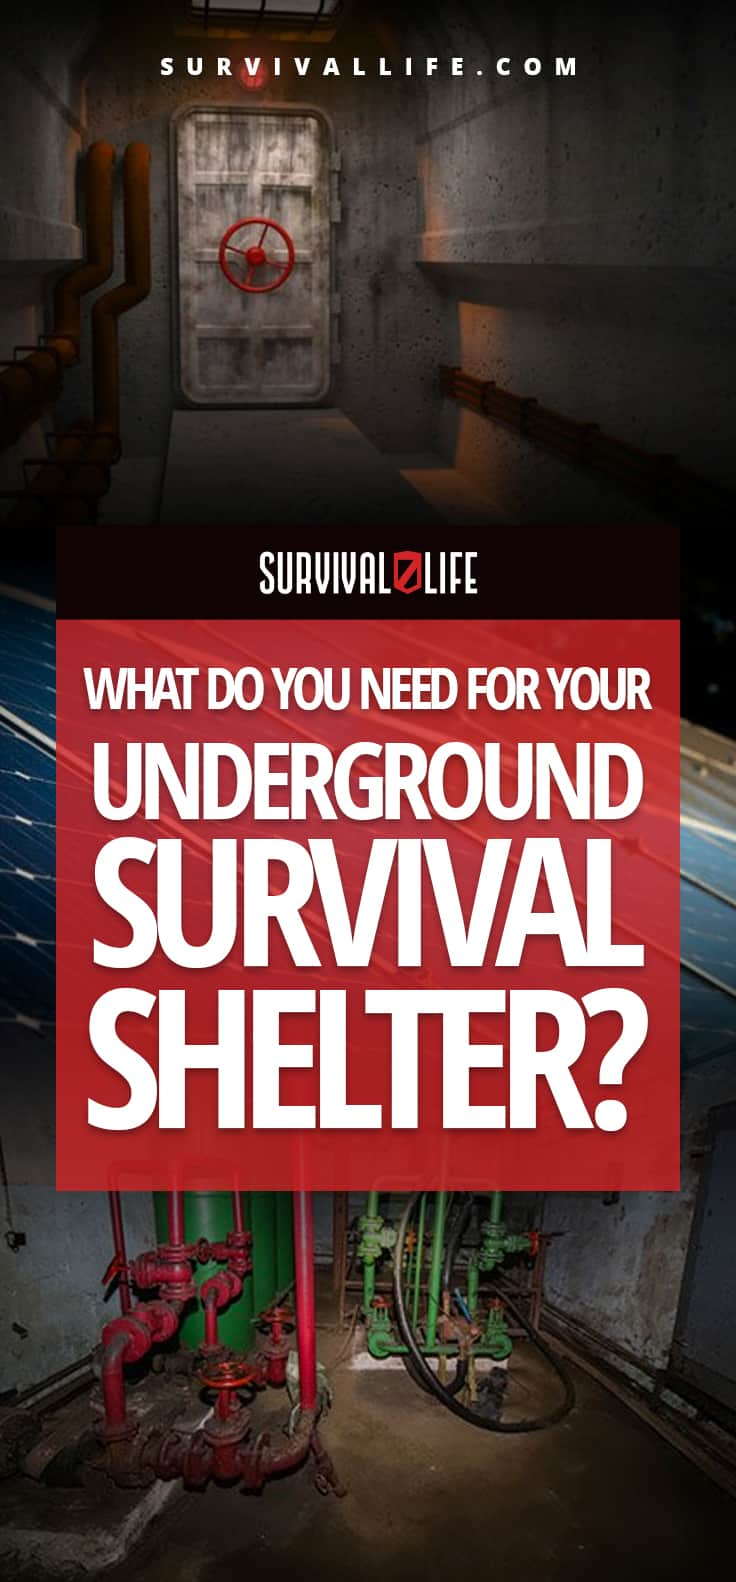 What Do You Need For Your Underground Survival Shelter?